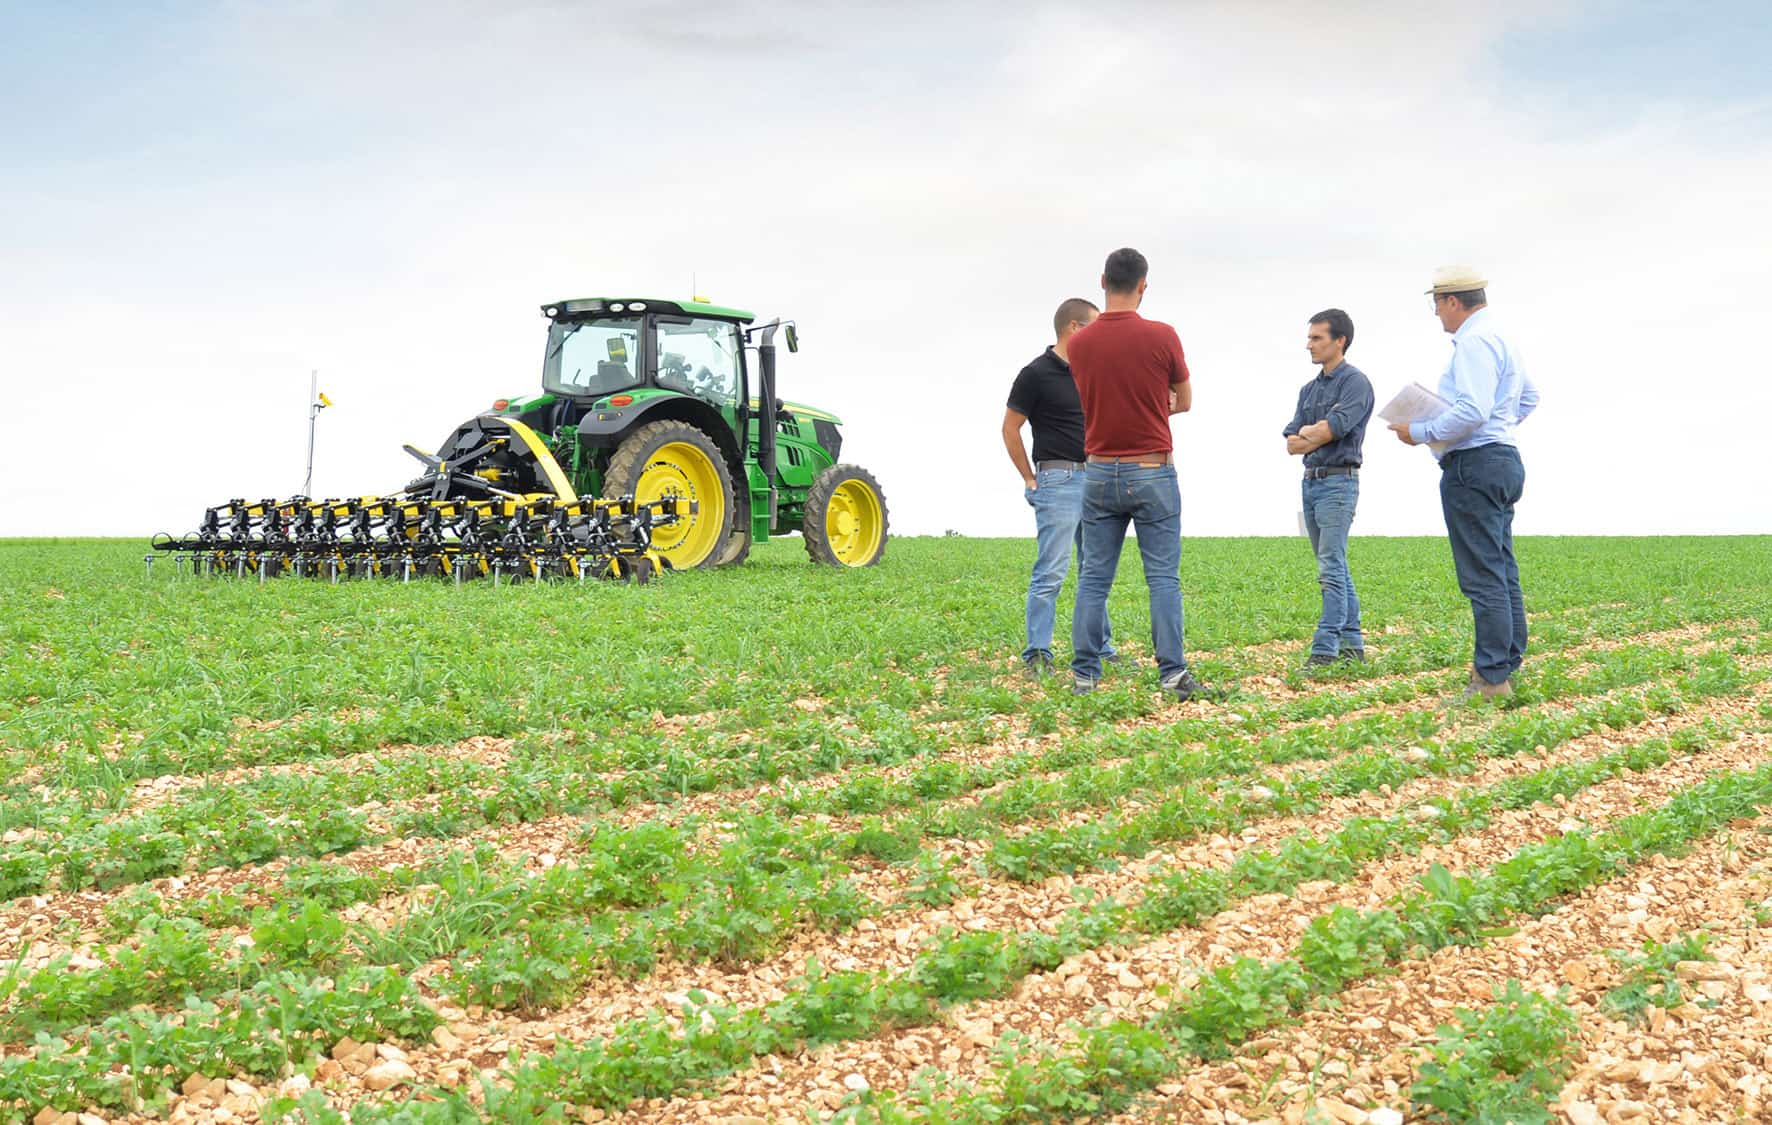 Field trys with machines, rotary and row hoes. User coaching